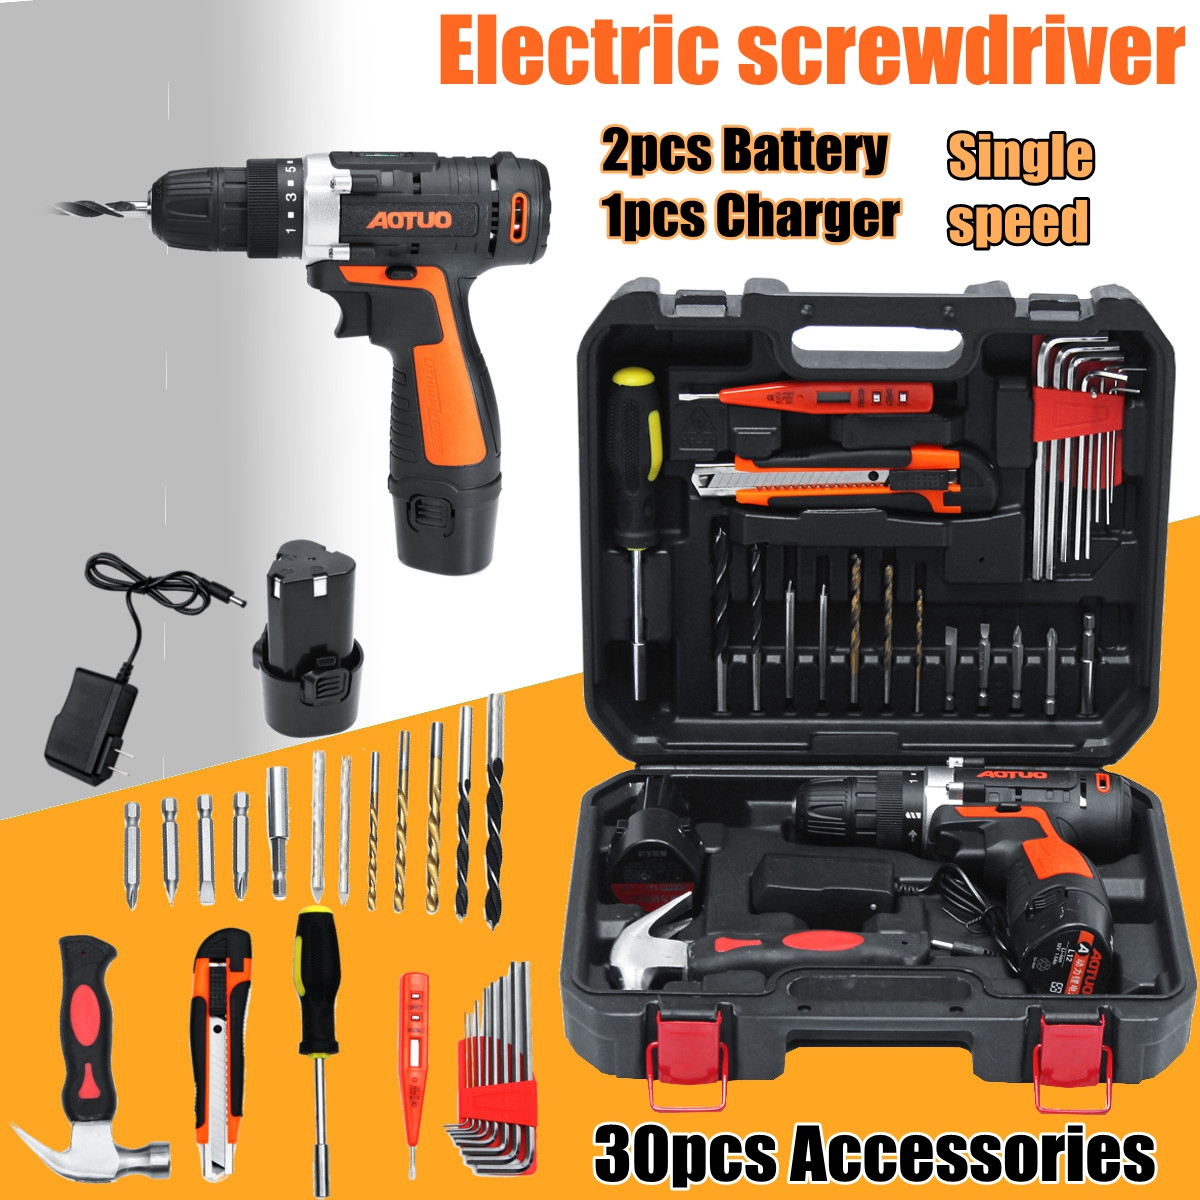 Cordless 12V Electric Screwdriver Power Drills Kit Rechargeable Screwdriver Single/Double Speed 2 Battery+30PCS Accessories 2016 45 pcs rechargeable cordless reversible electric screwdriver 4 8v kit set hot handheld electric screwdriver